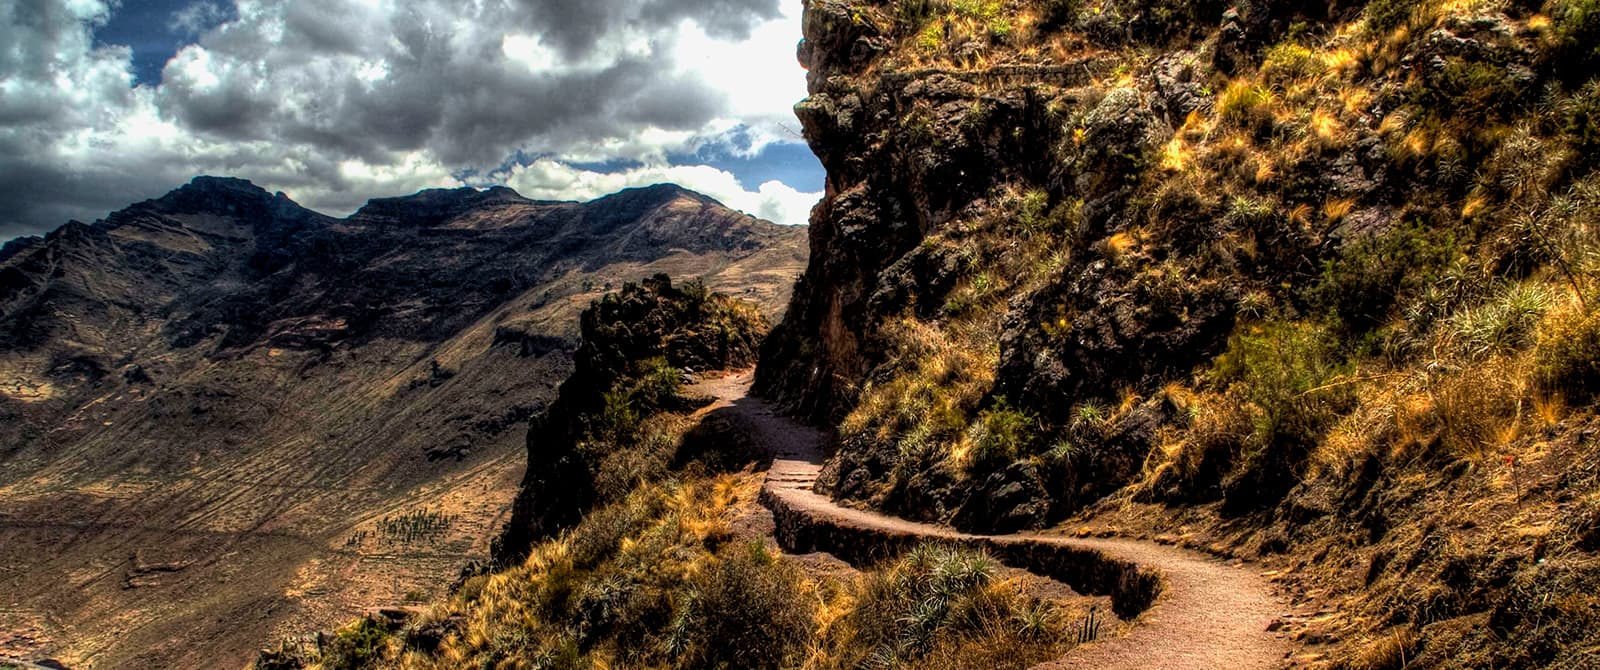 inka trail hiking to machu picchu